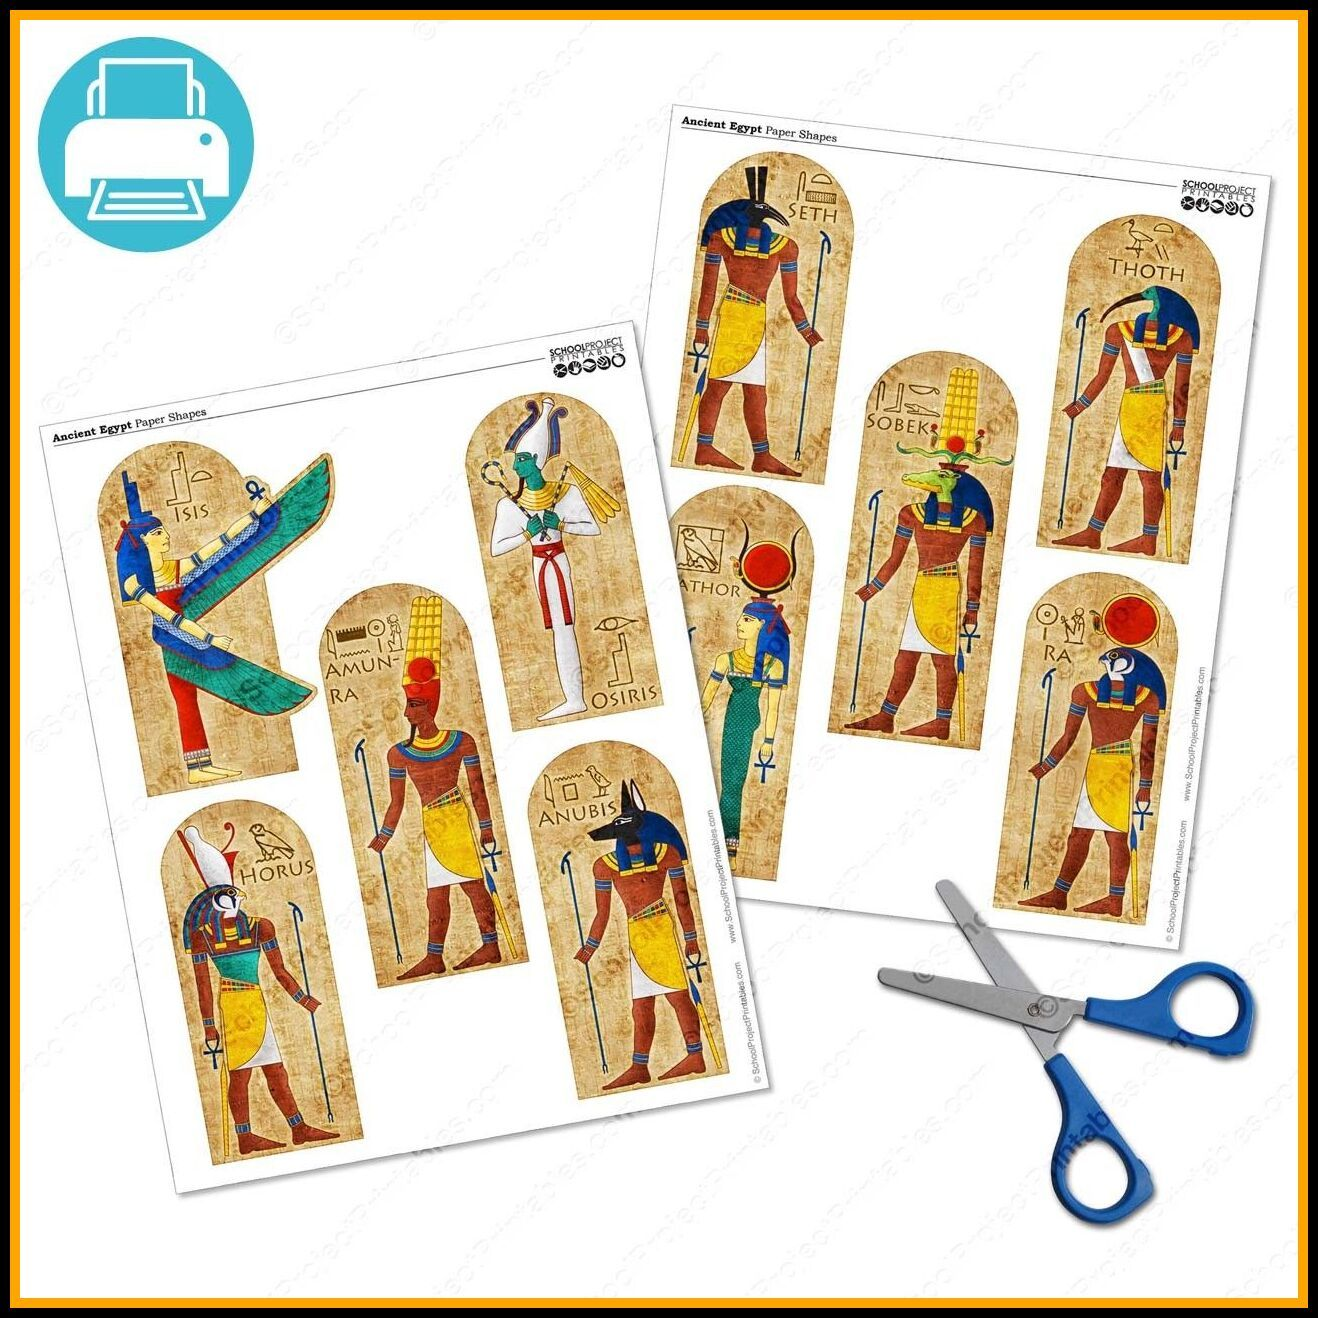 39 Reference Of Kids Projects Ancient Egypt In